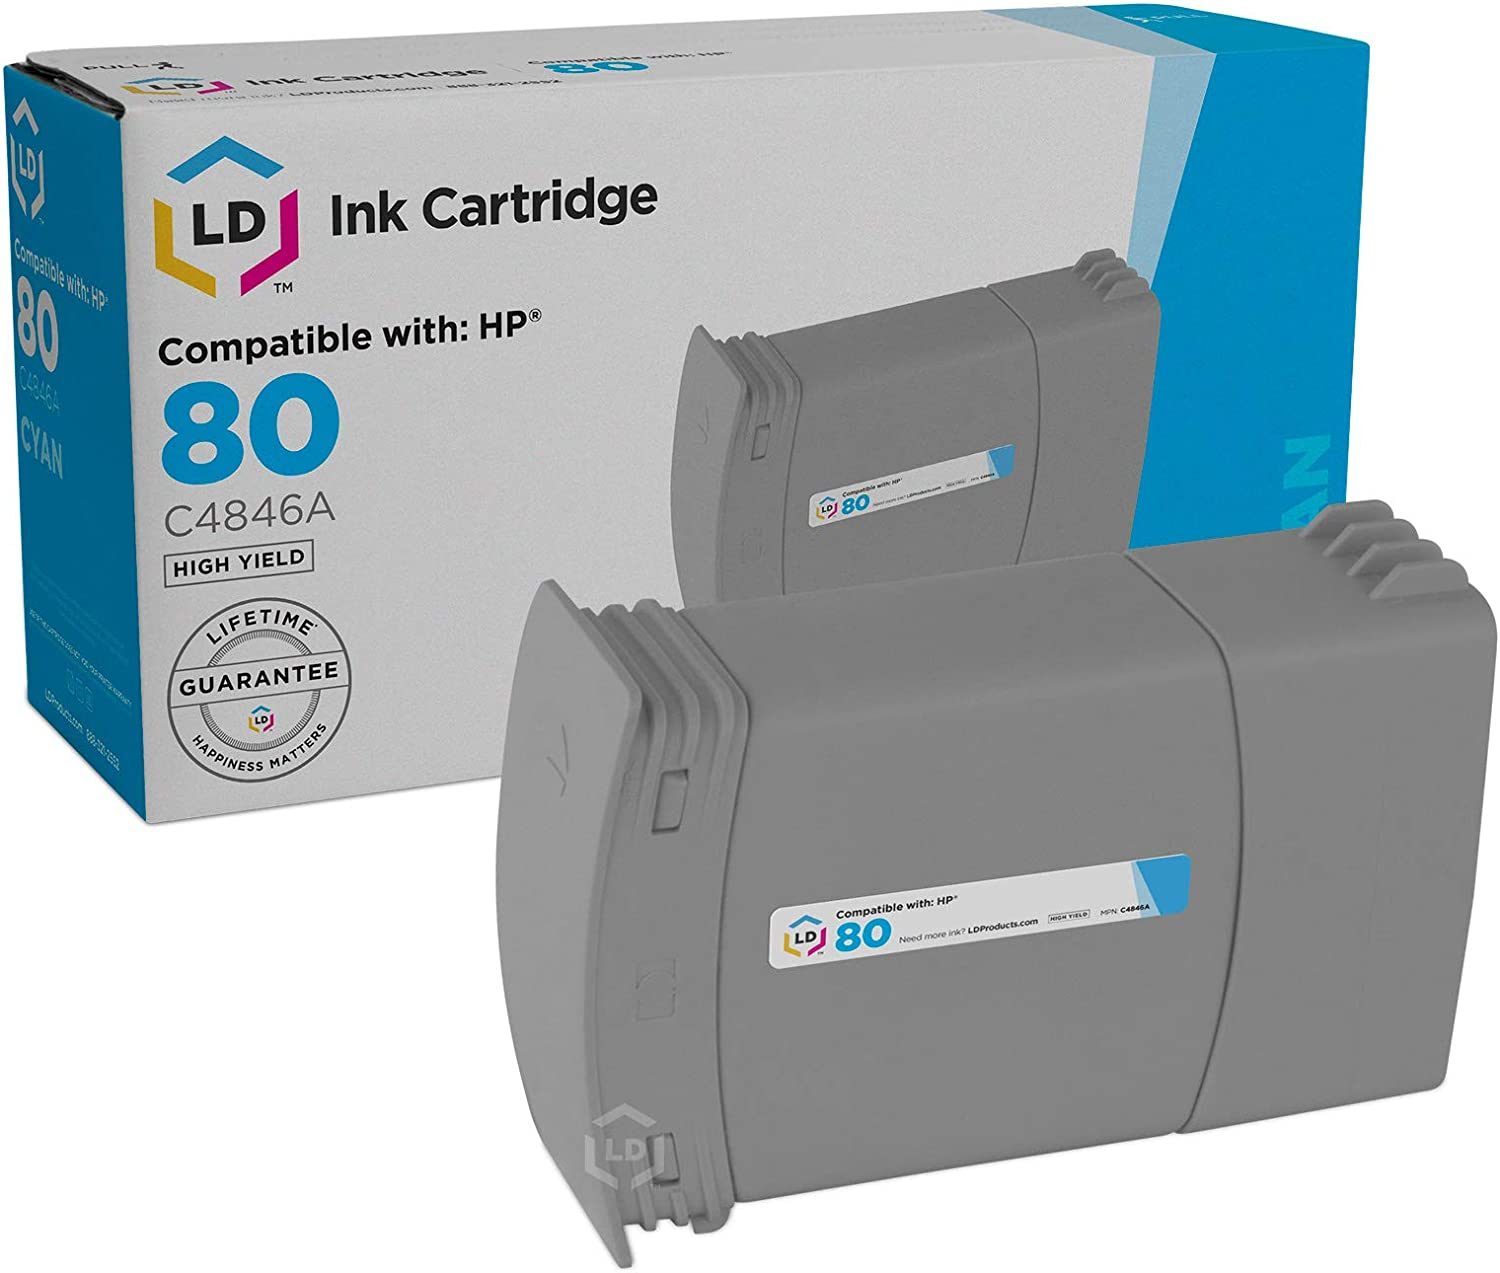 LD Remanufactured Ink Cartridge Replacement for HP 80 C4846A (Cyan)